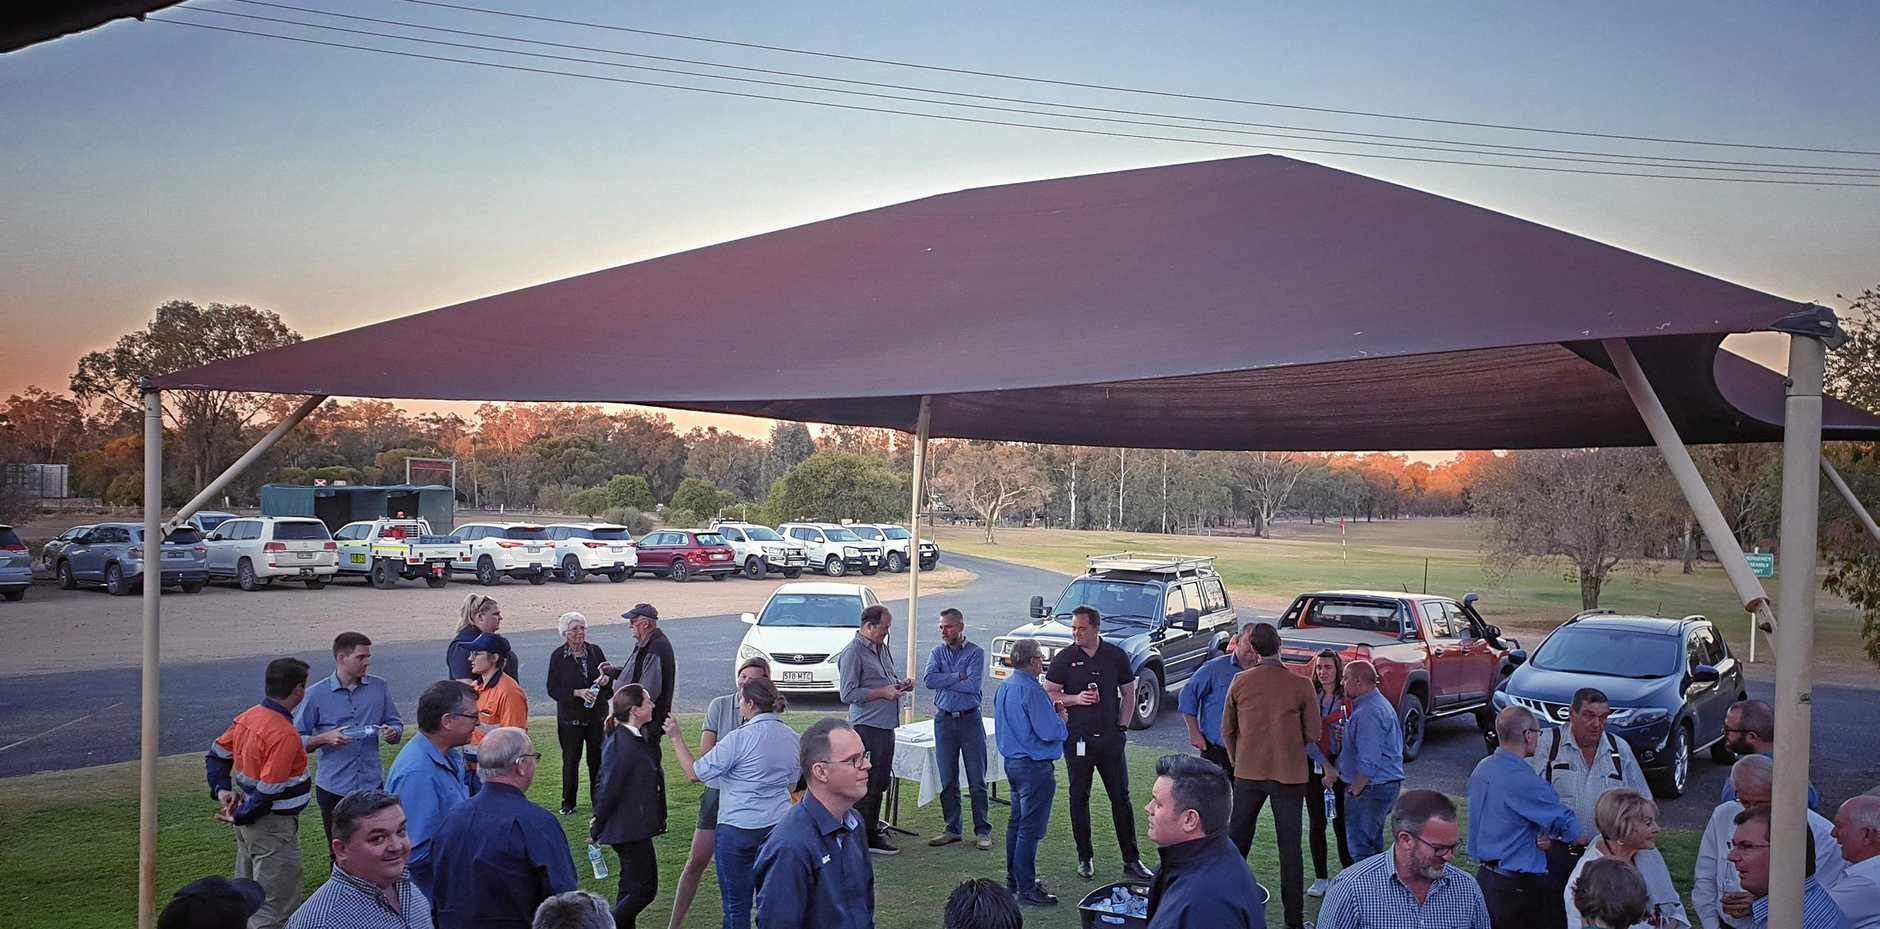 THANKYOU: APPEA say thank you to landowners and community by hosting family fun evening.